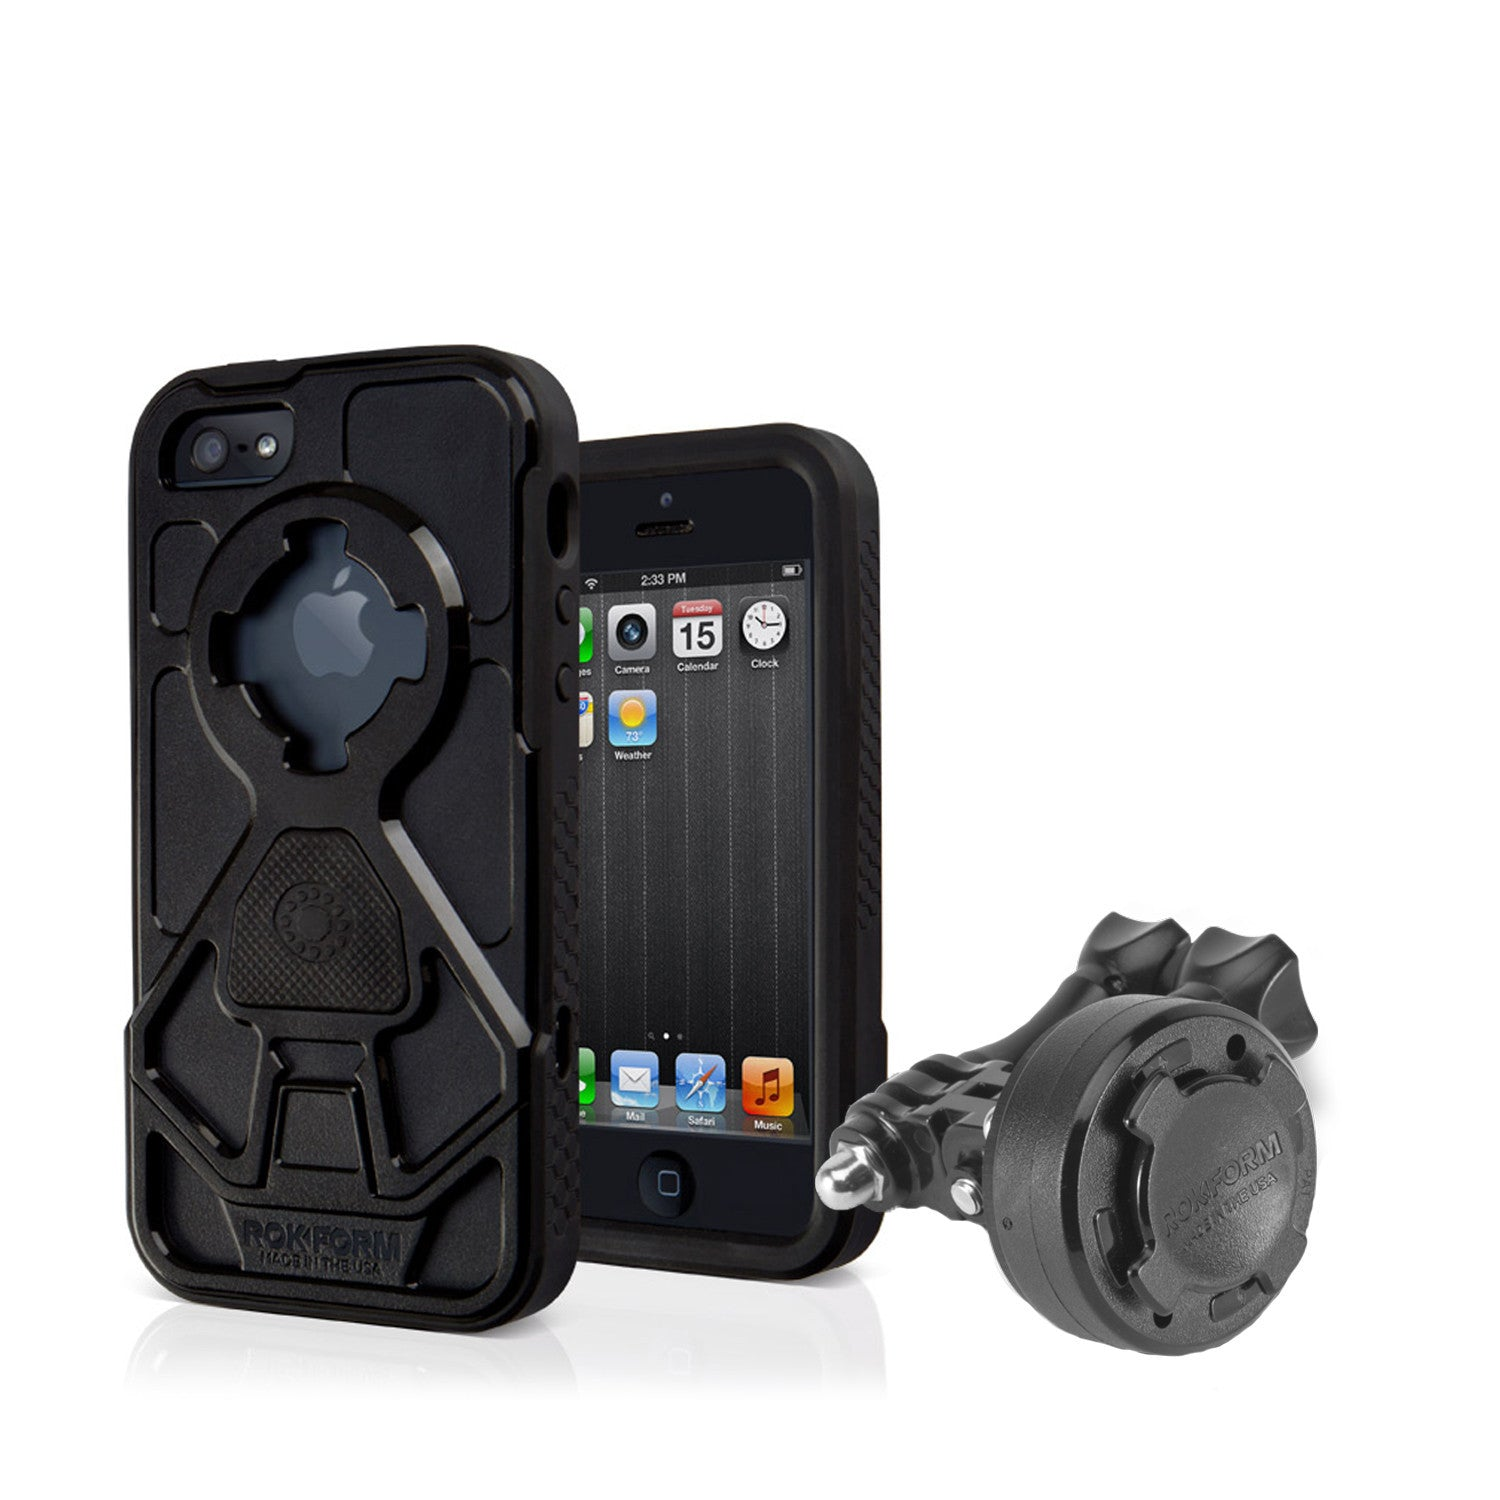 iPhone SE/5/5s GoPro Mount Kit - Rokform